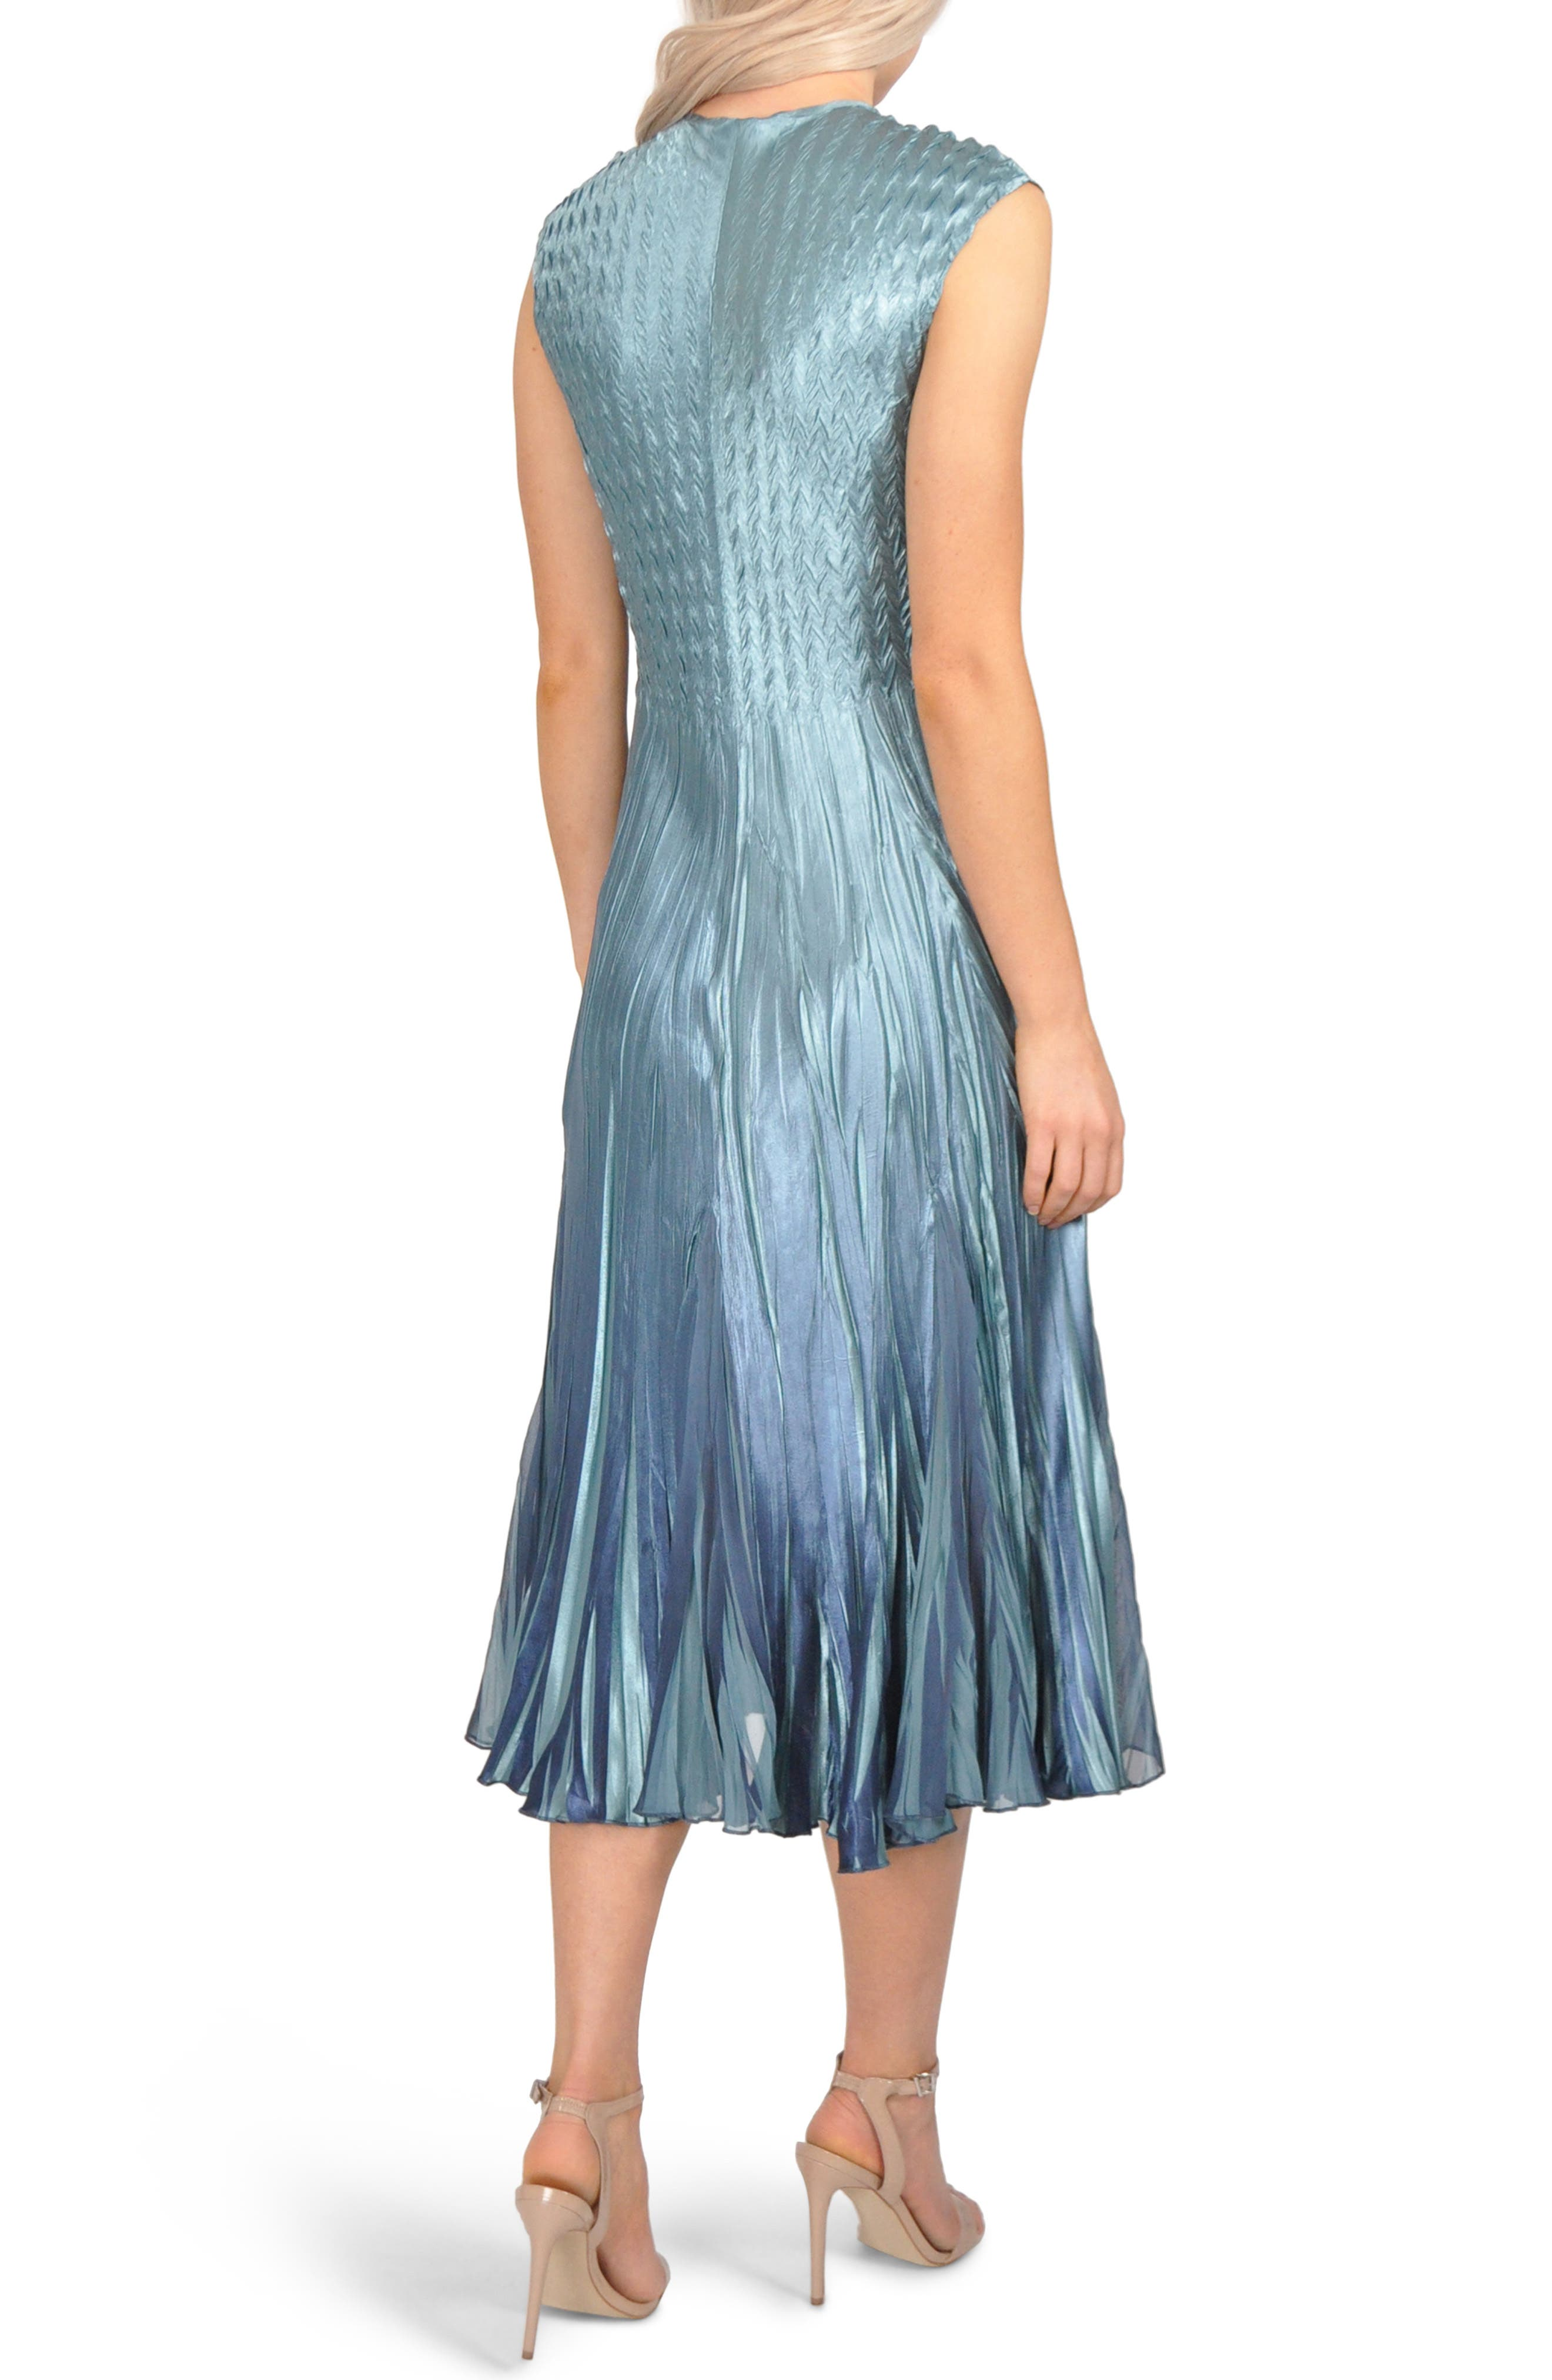 Embellished Pleat Mixed Media Dress with Jacket,                             Alternate thumbnail 5, color,                             SILVER BLUE OMBRE